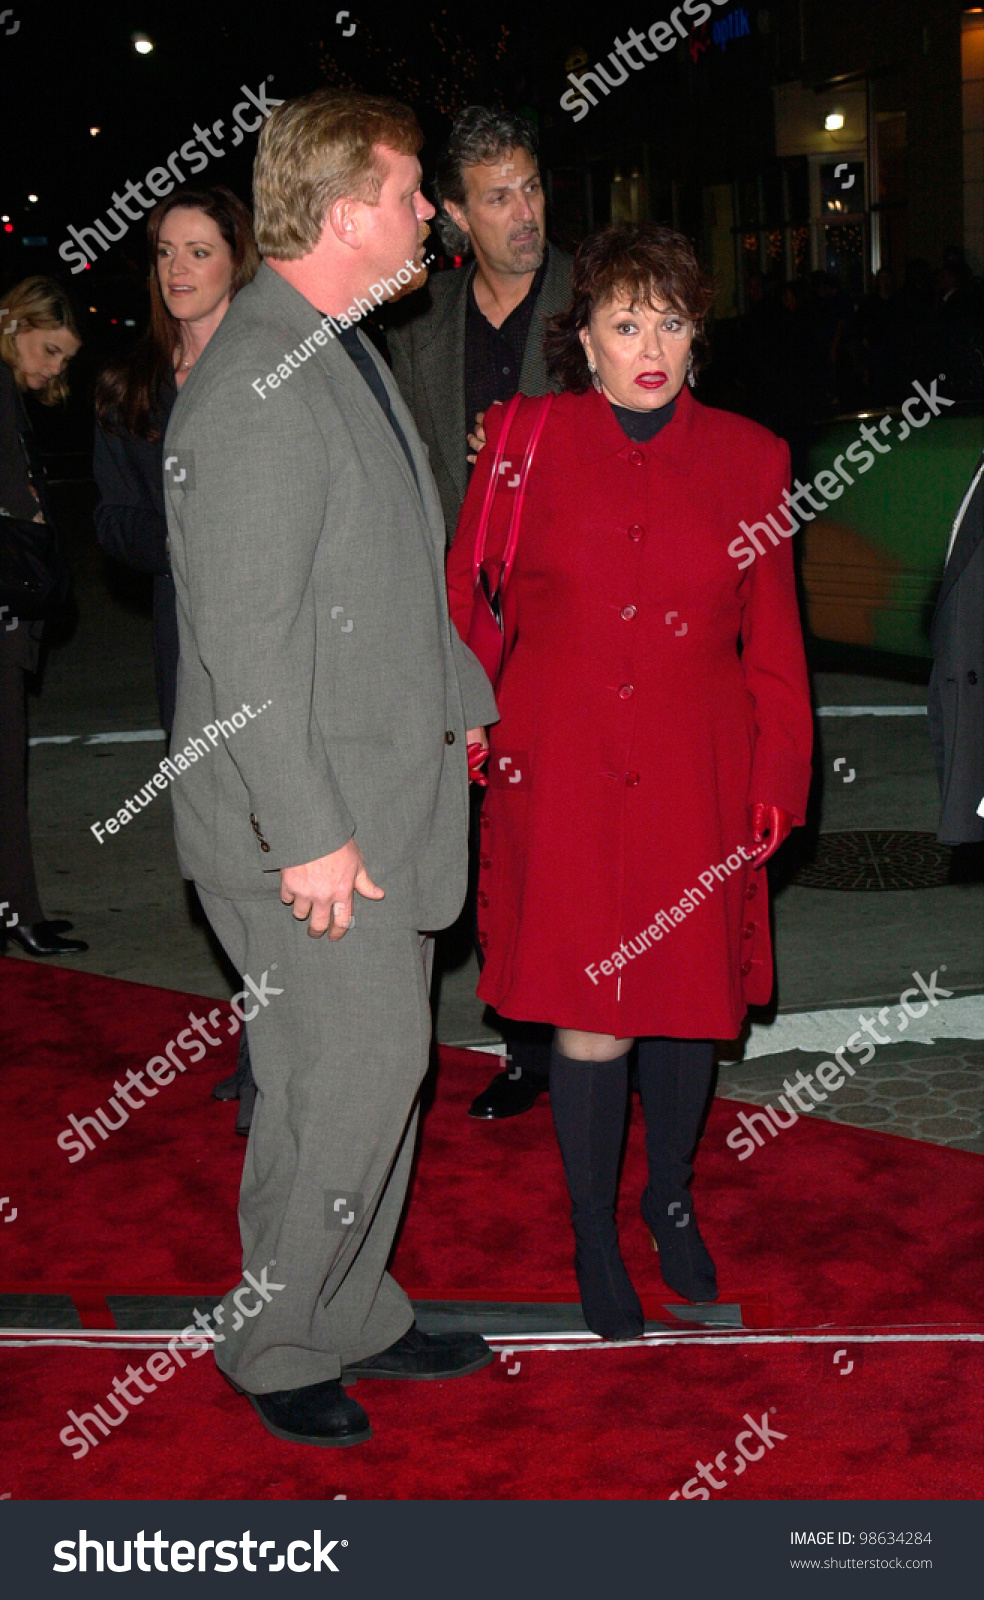 Roseanne Barr |HQ Pictures| ... just look it...